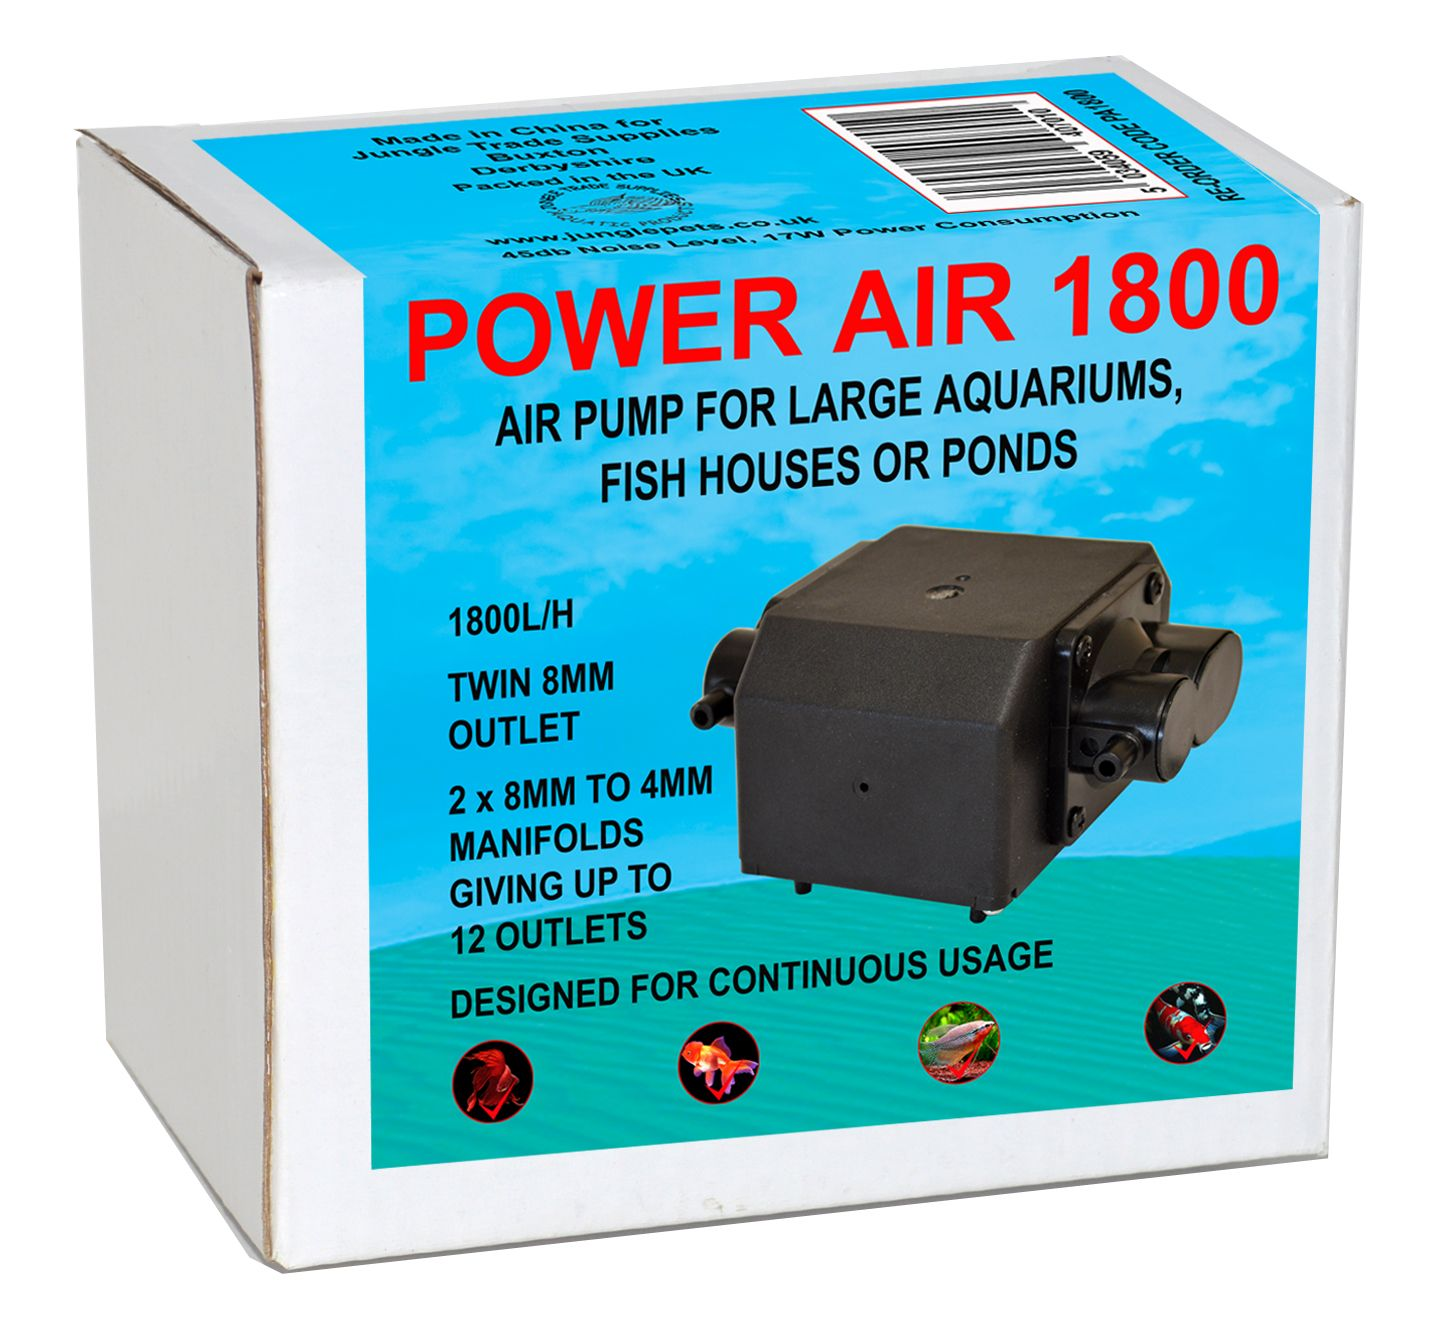 Power air 1800 l h airpump multi outlet pump for large for Large fish pond pumps